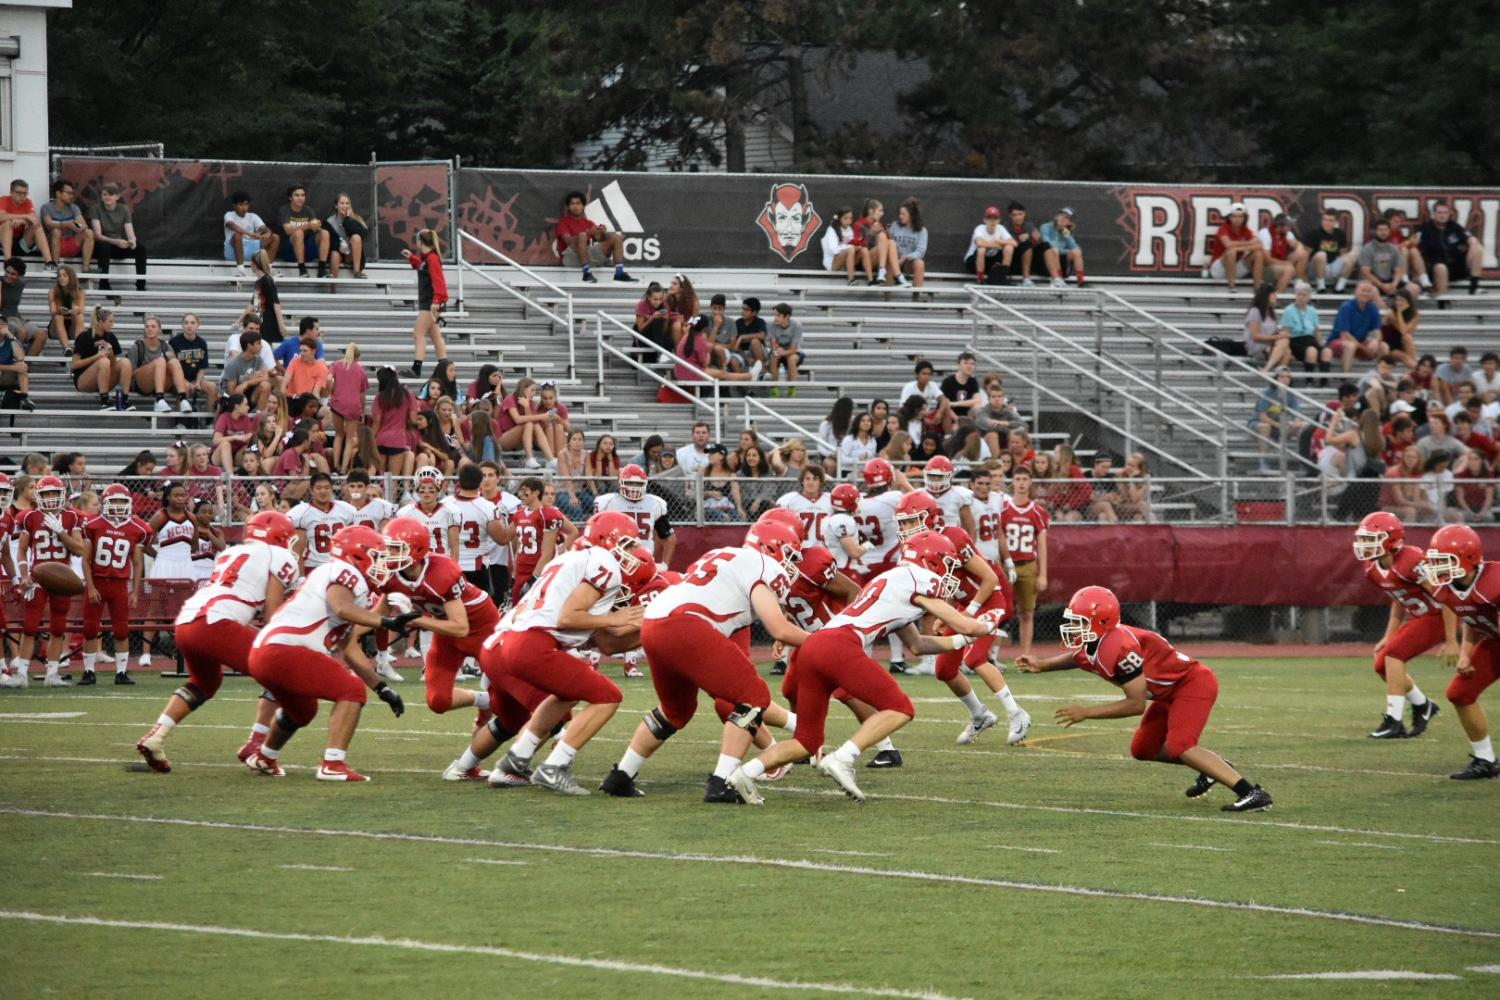 Football season kicked  off with the Red-White Scrimmage on Aug. 18.